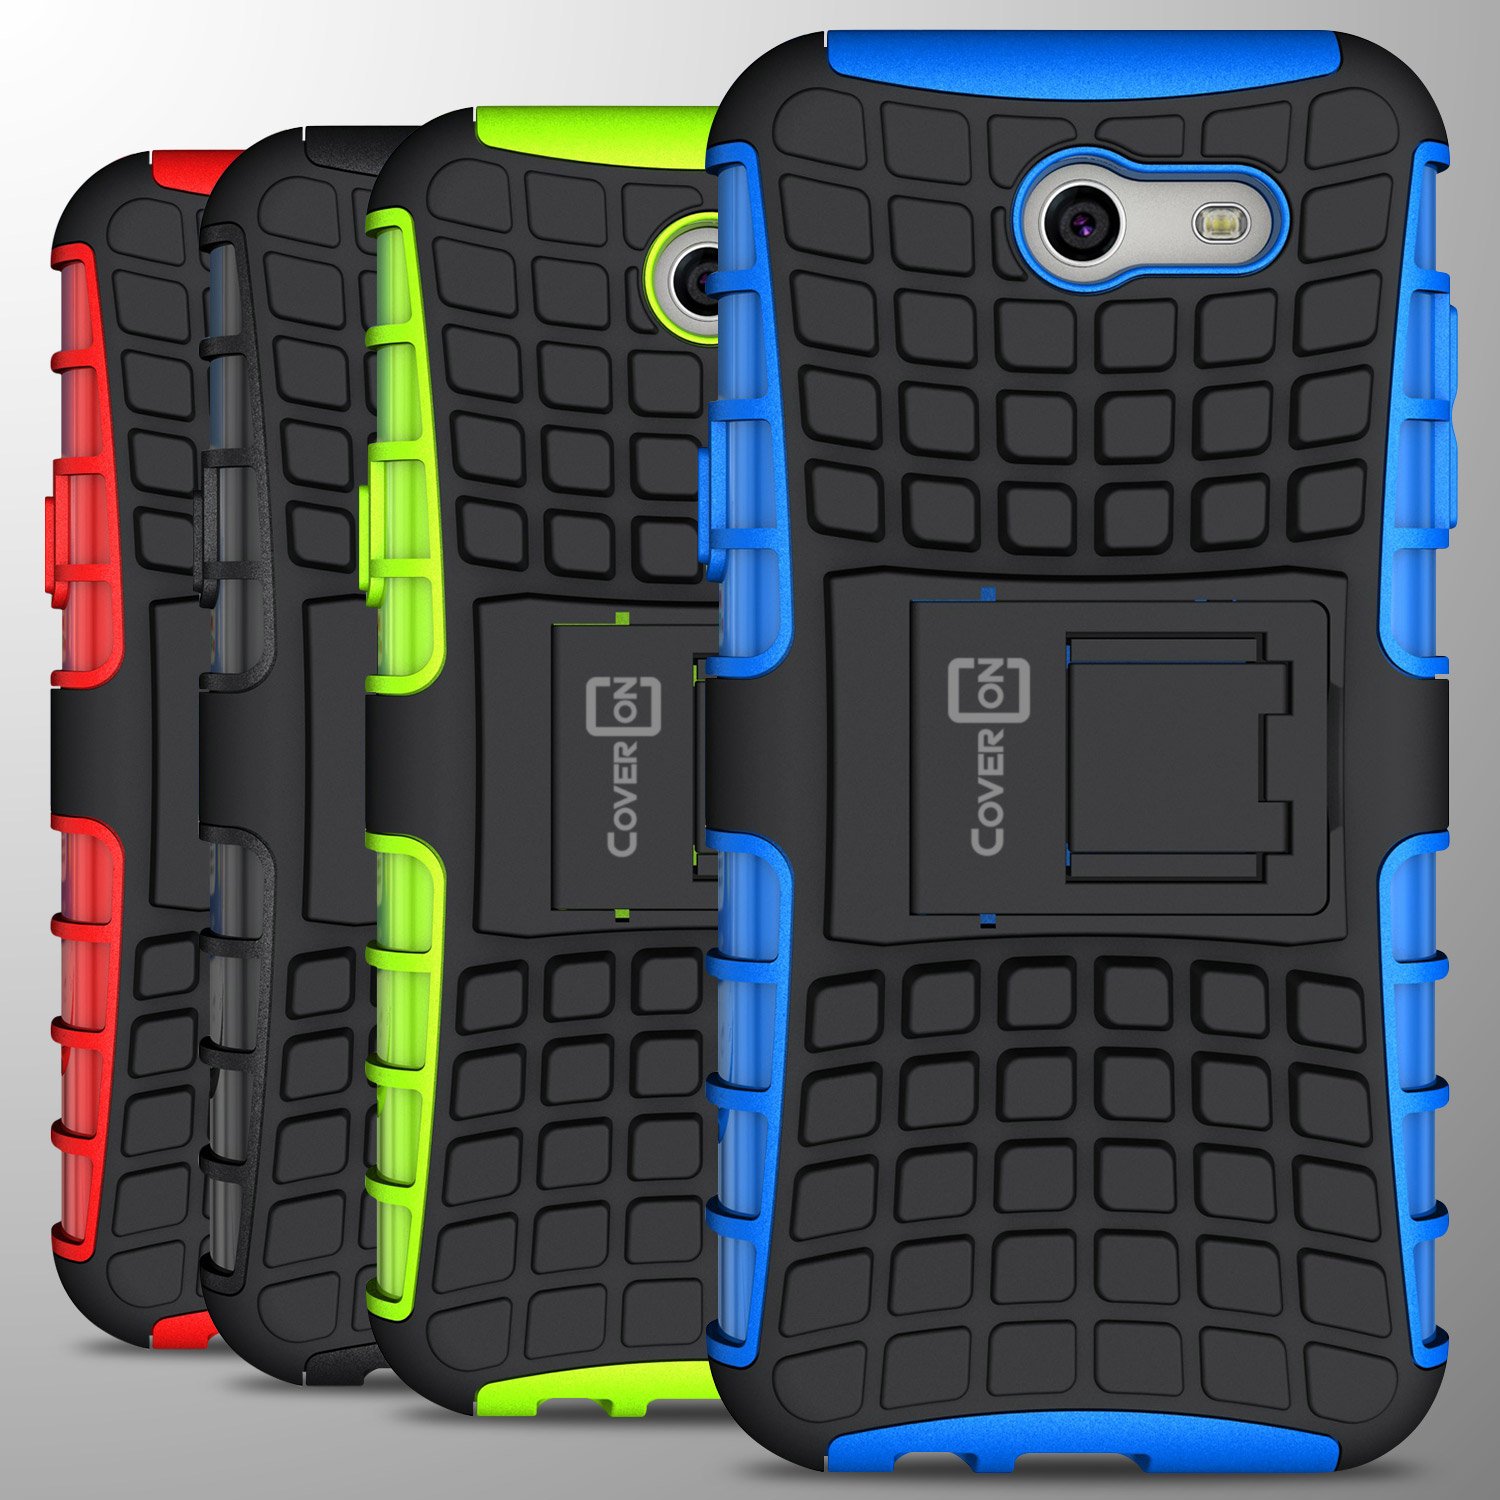 separation shoes 5ee93 b7aeb Details about For Samsung Galaxy J3 Luna Pro / J3 Eclipse Case Protective  Kickstand Cover